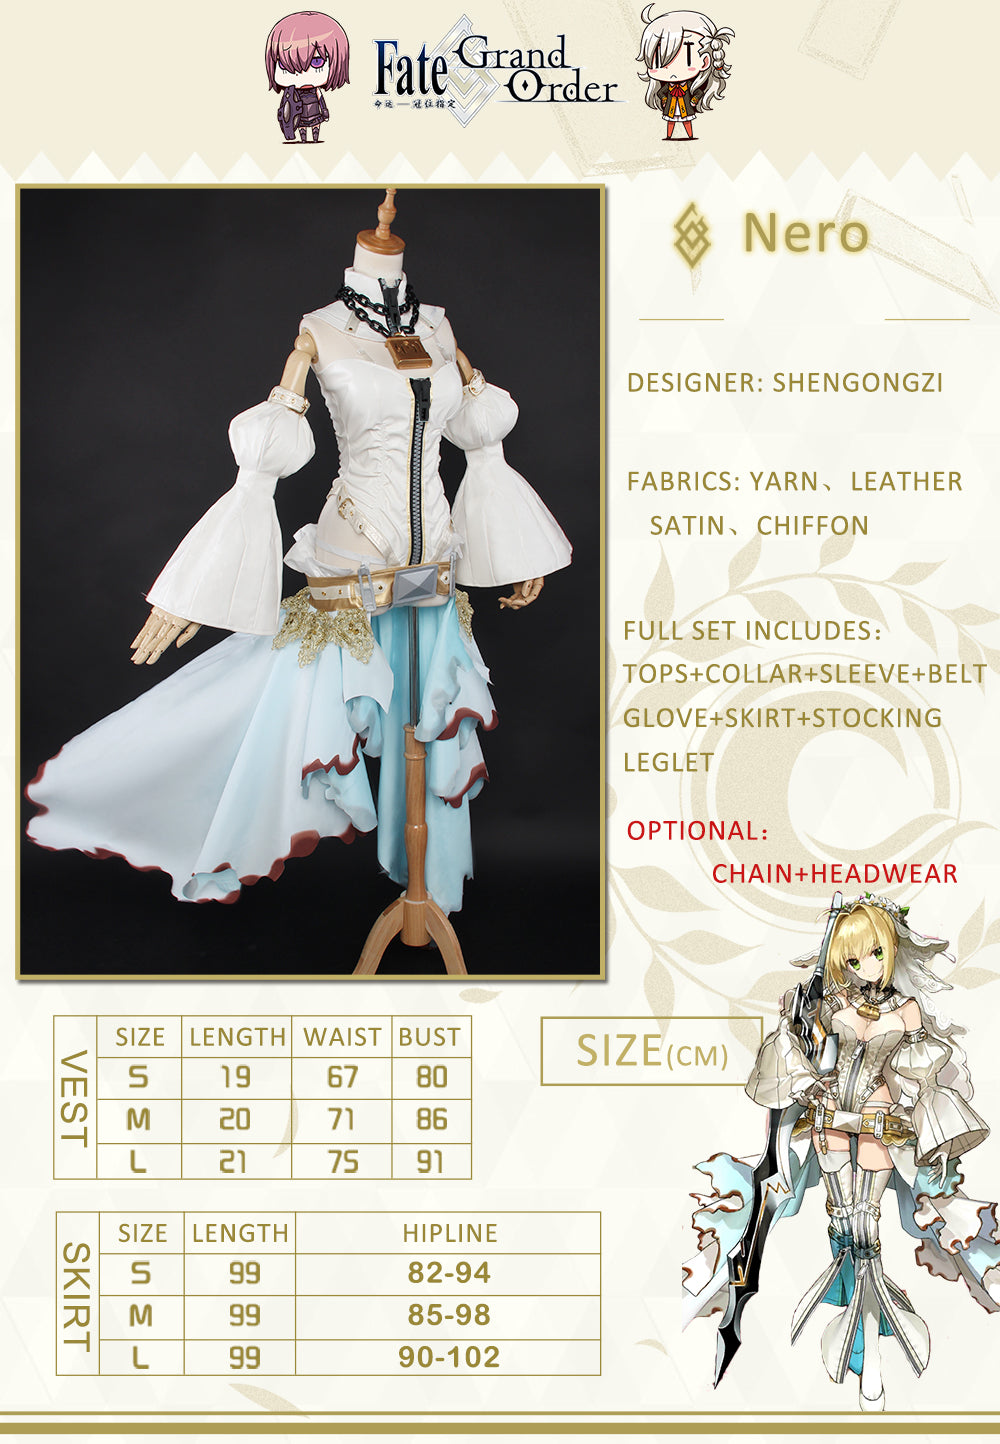 Fate Grand Order Nero Red Saber Bride Cosplay Women Wedding Party Costumes UWOWO